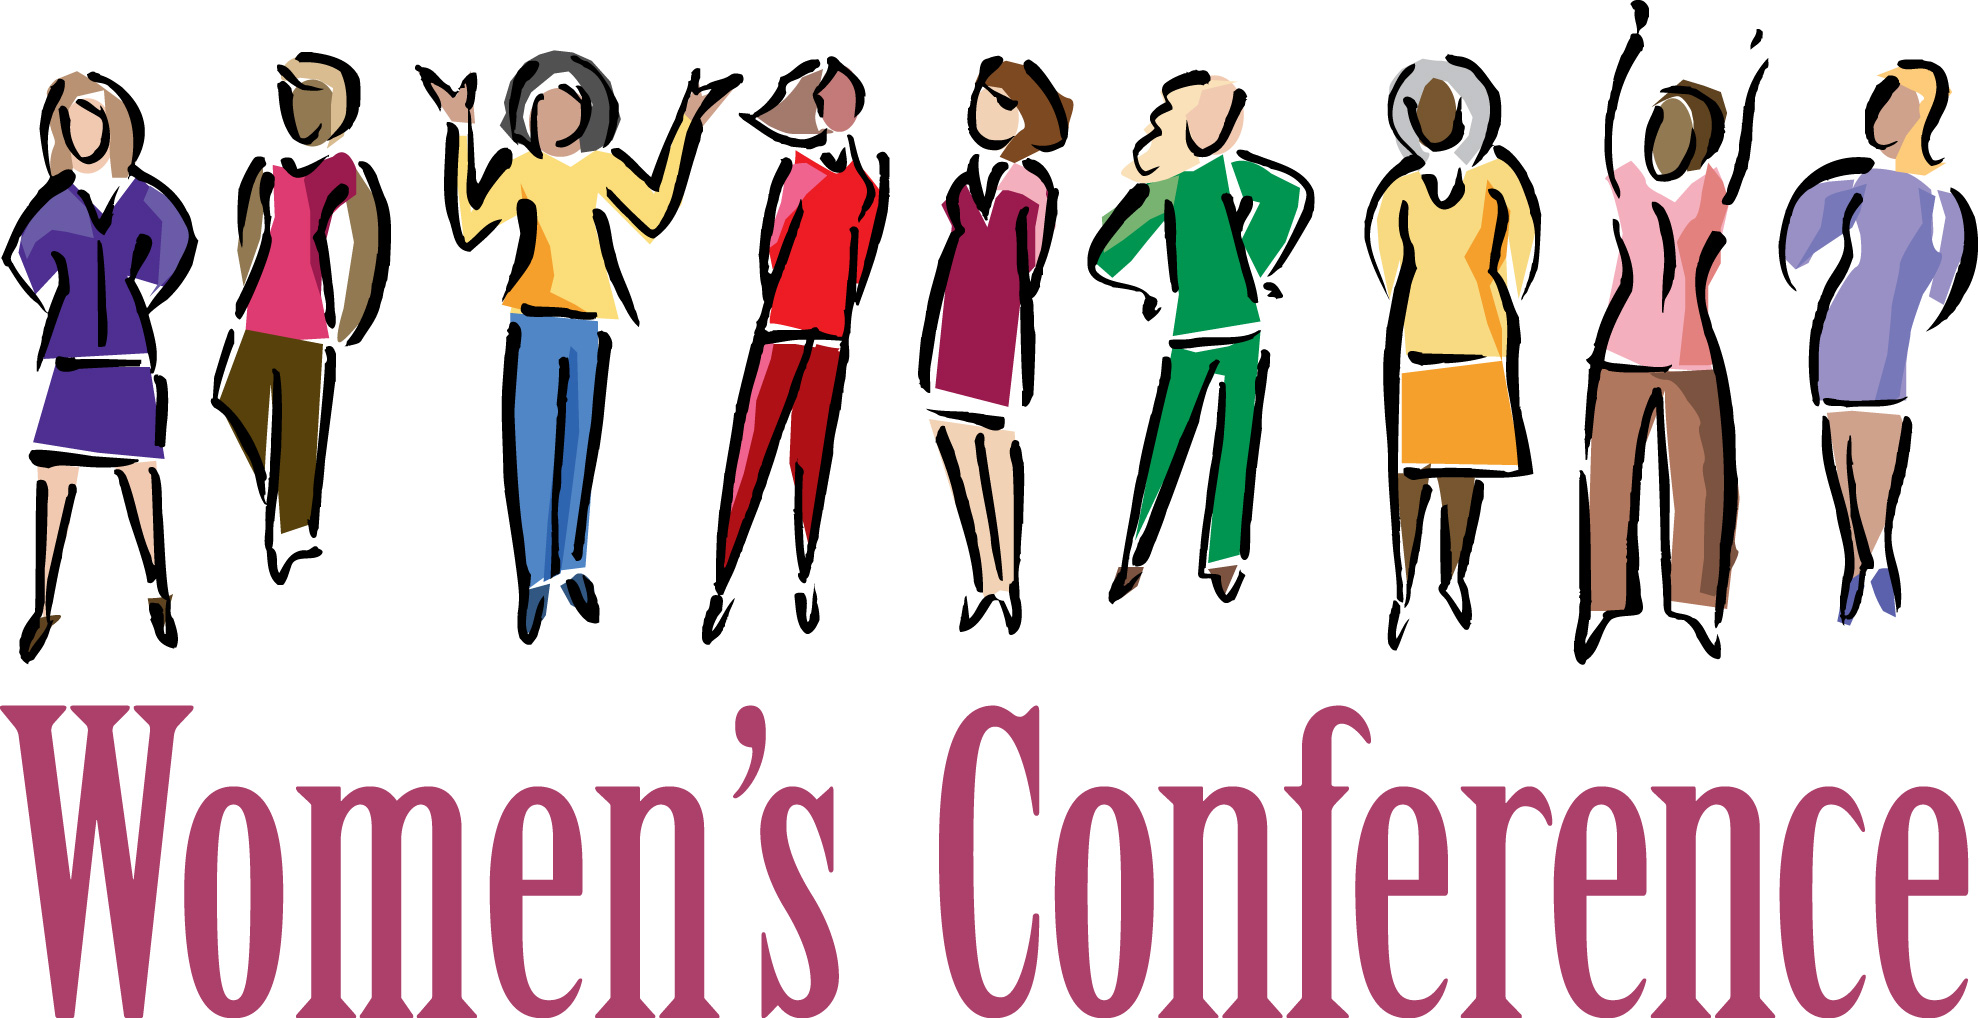 church women conference clipart